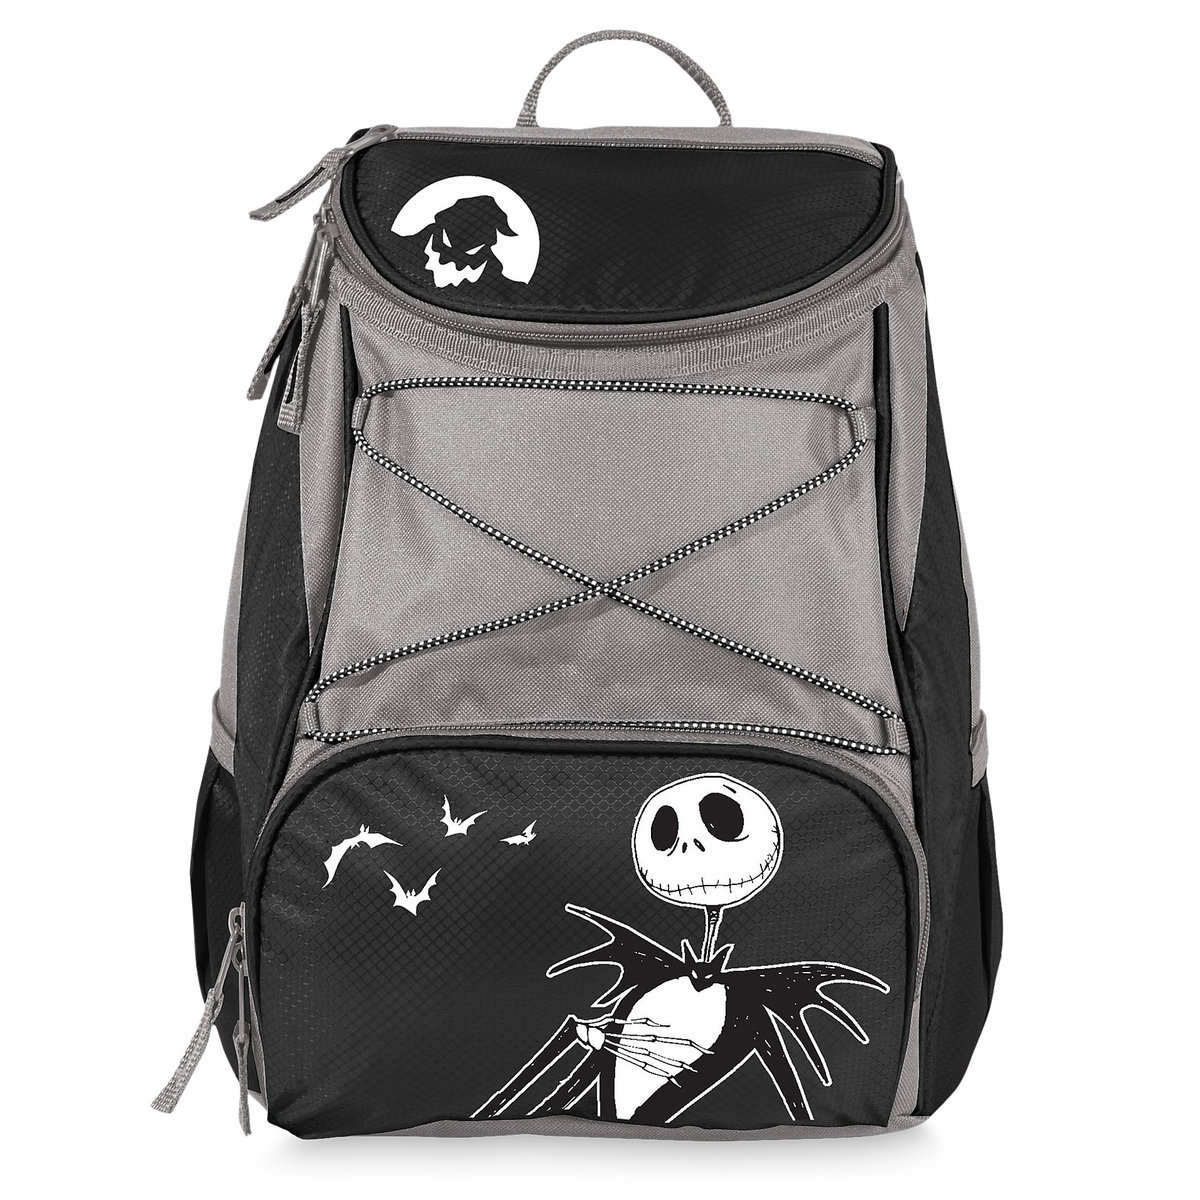 de1ad08a127 Product Image of The Nightmare Before Christmas Backpack Cooler   1